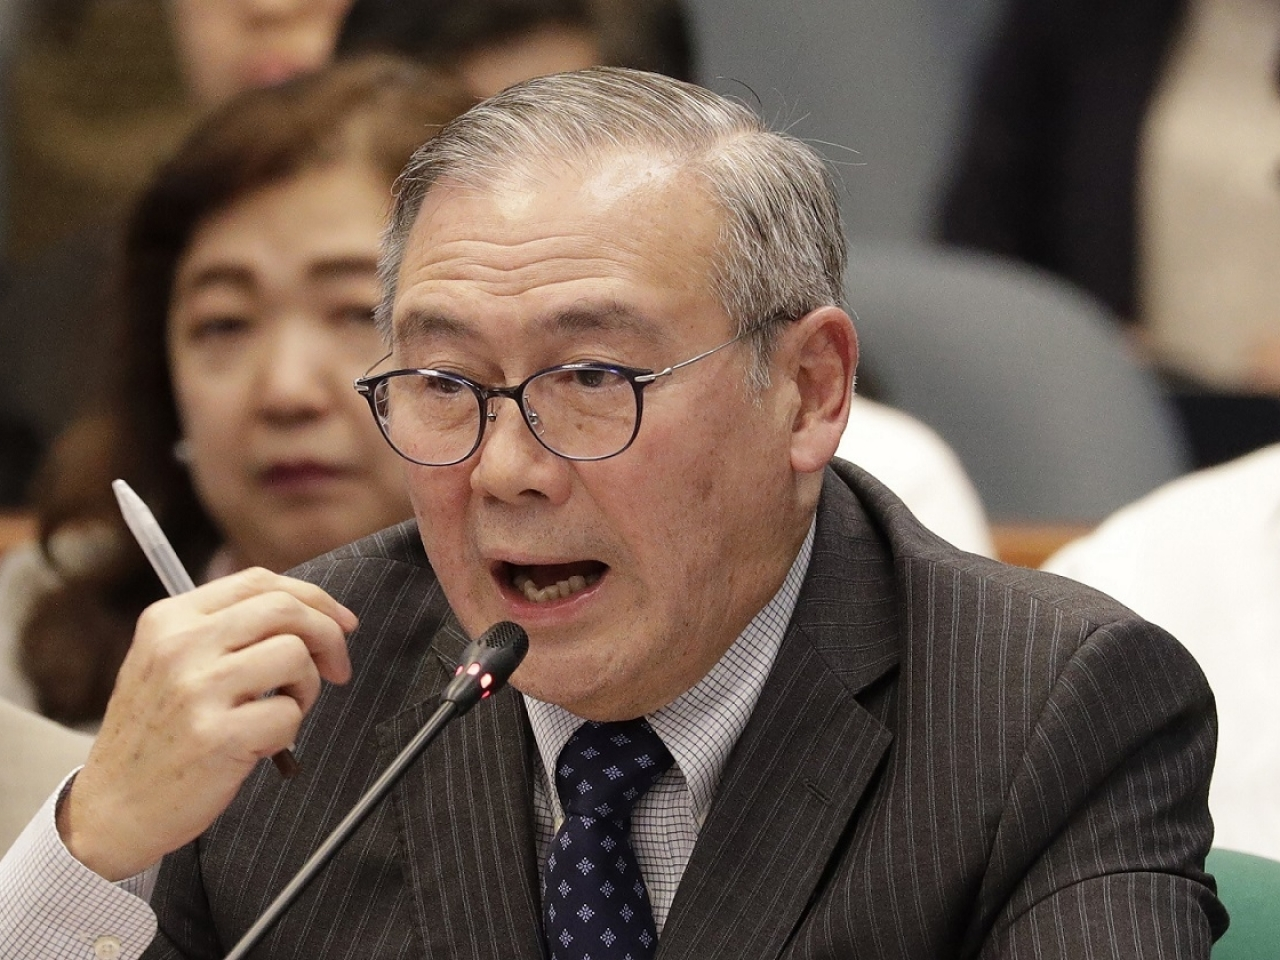 Foreign affairs secretary Teodoro Locsin apologised after tweeting an obscene phrase. File photo: AP